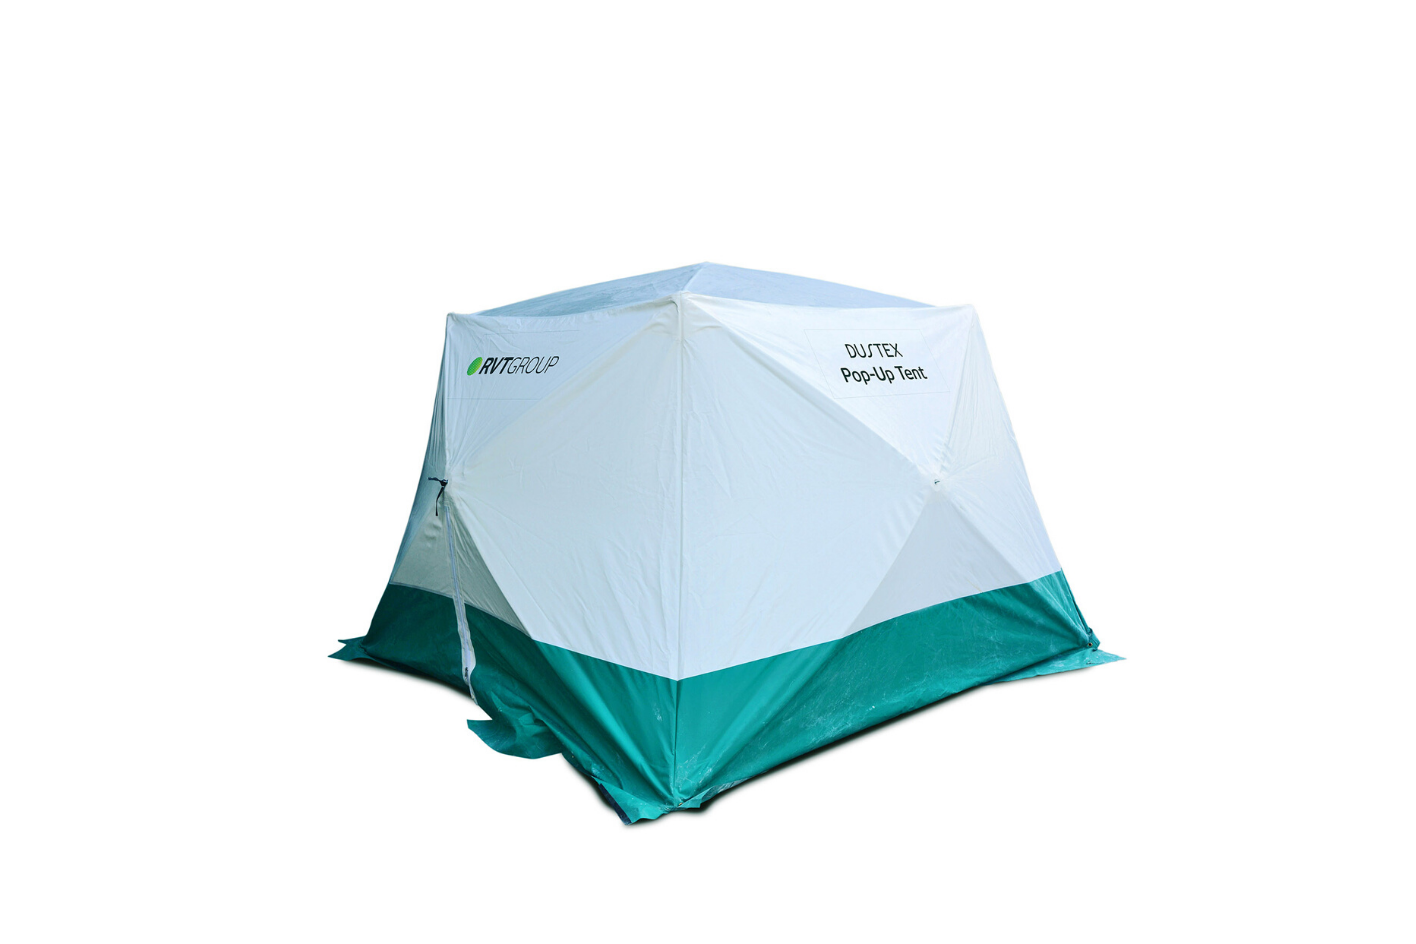 Dustex Pop up tent